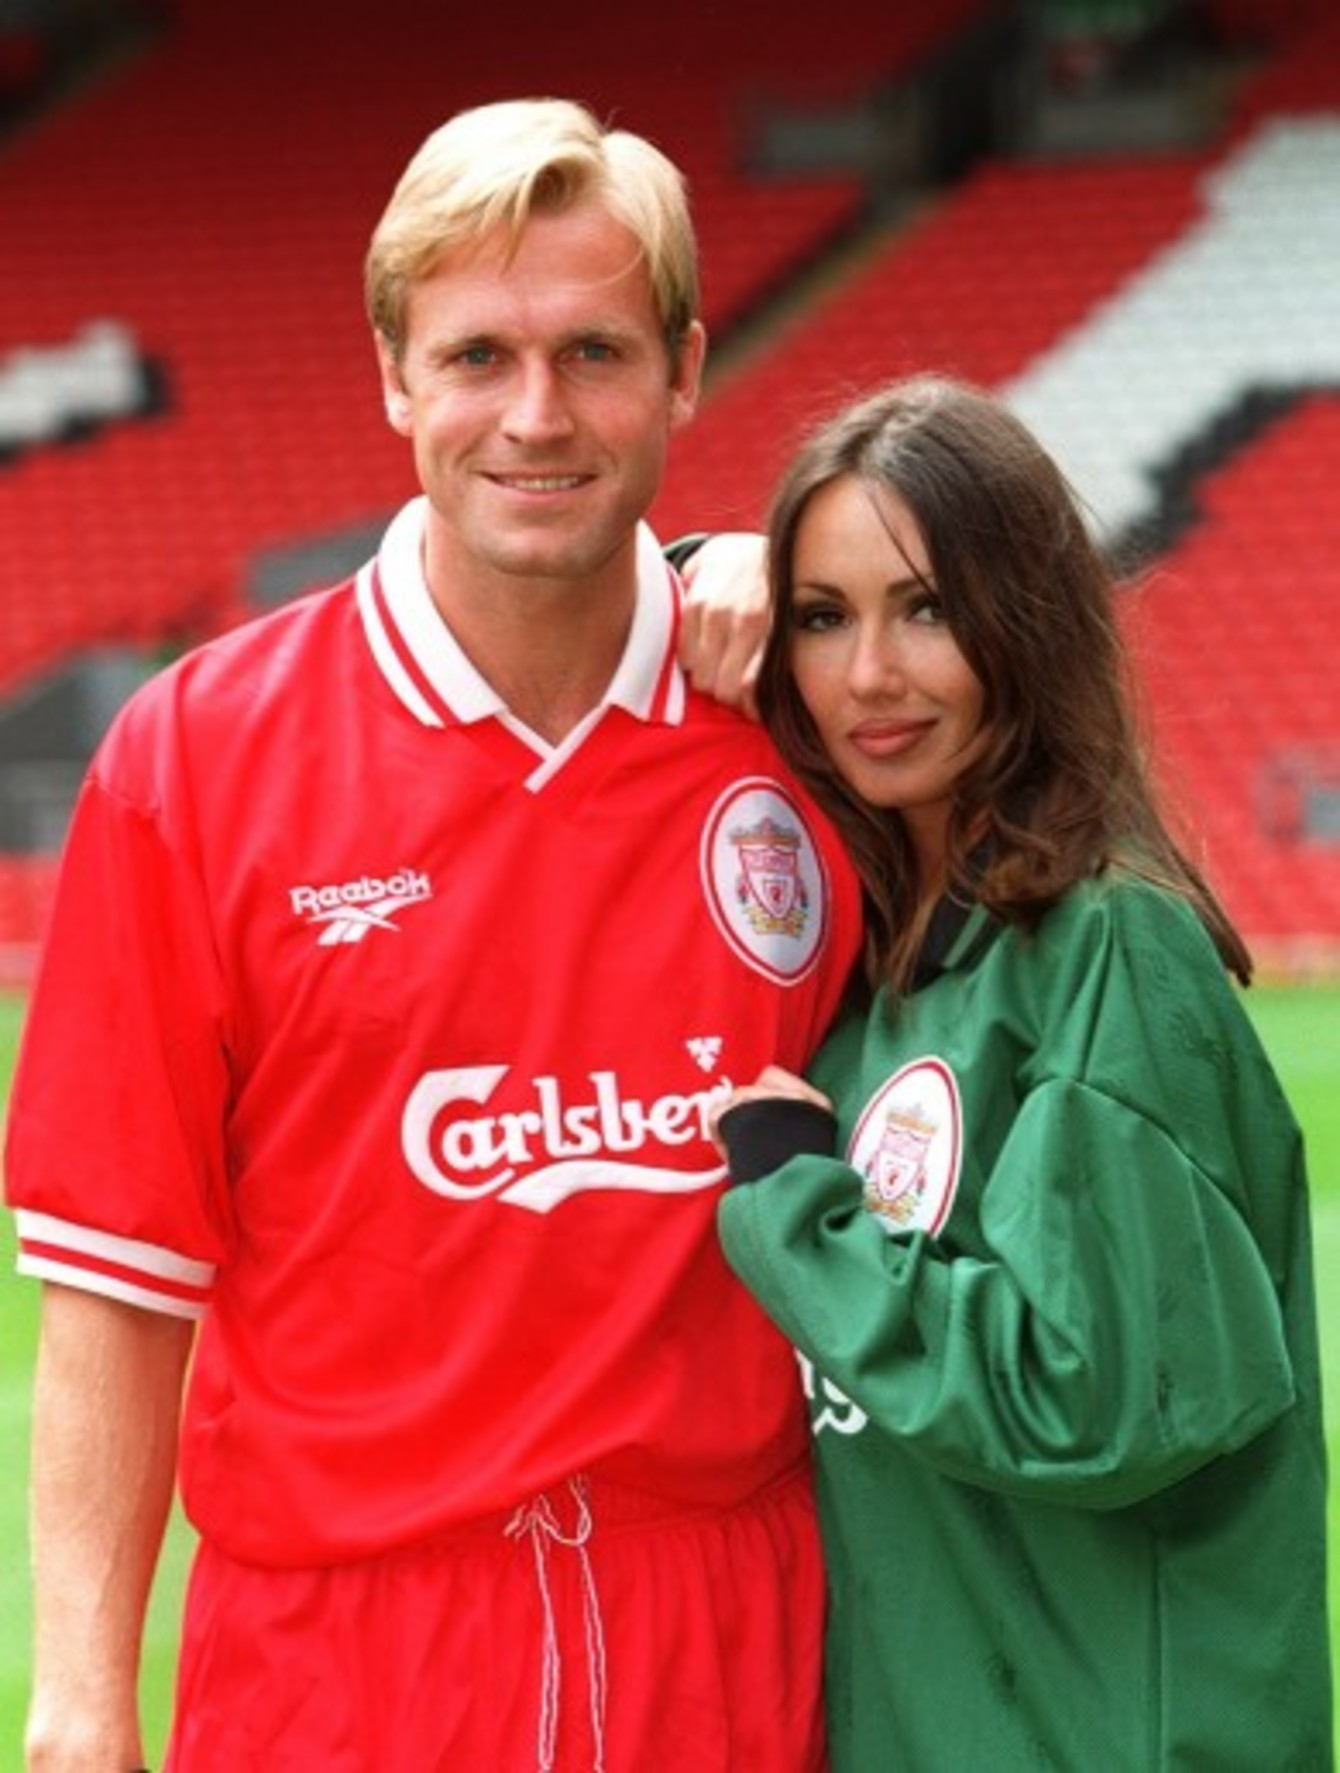 7a8638865a0 John Scales poses with Page 3 girl Kathy Lloyd to model Liverpool s new  Reebok kit in 1996.